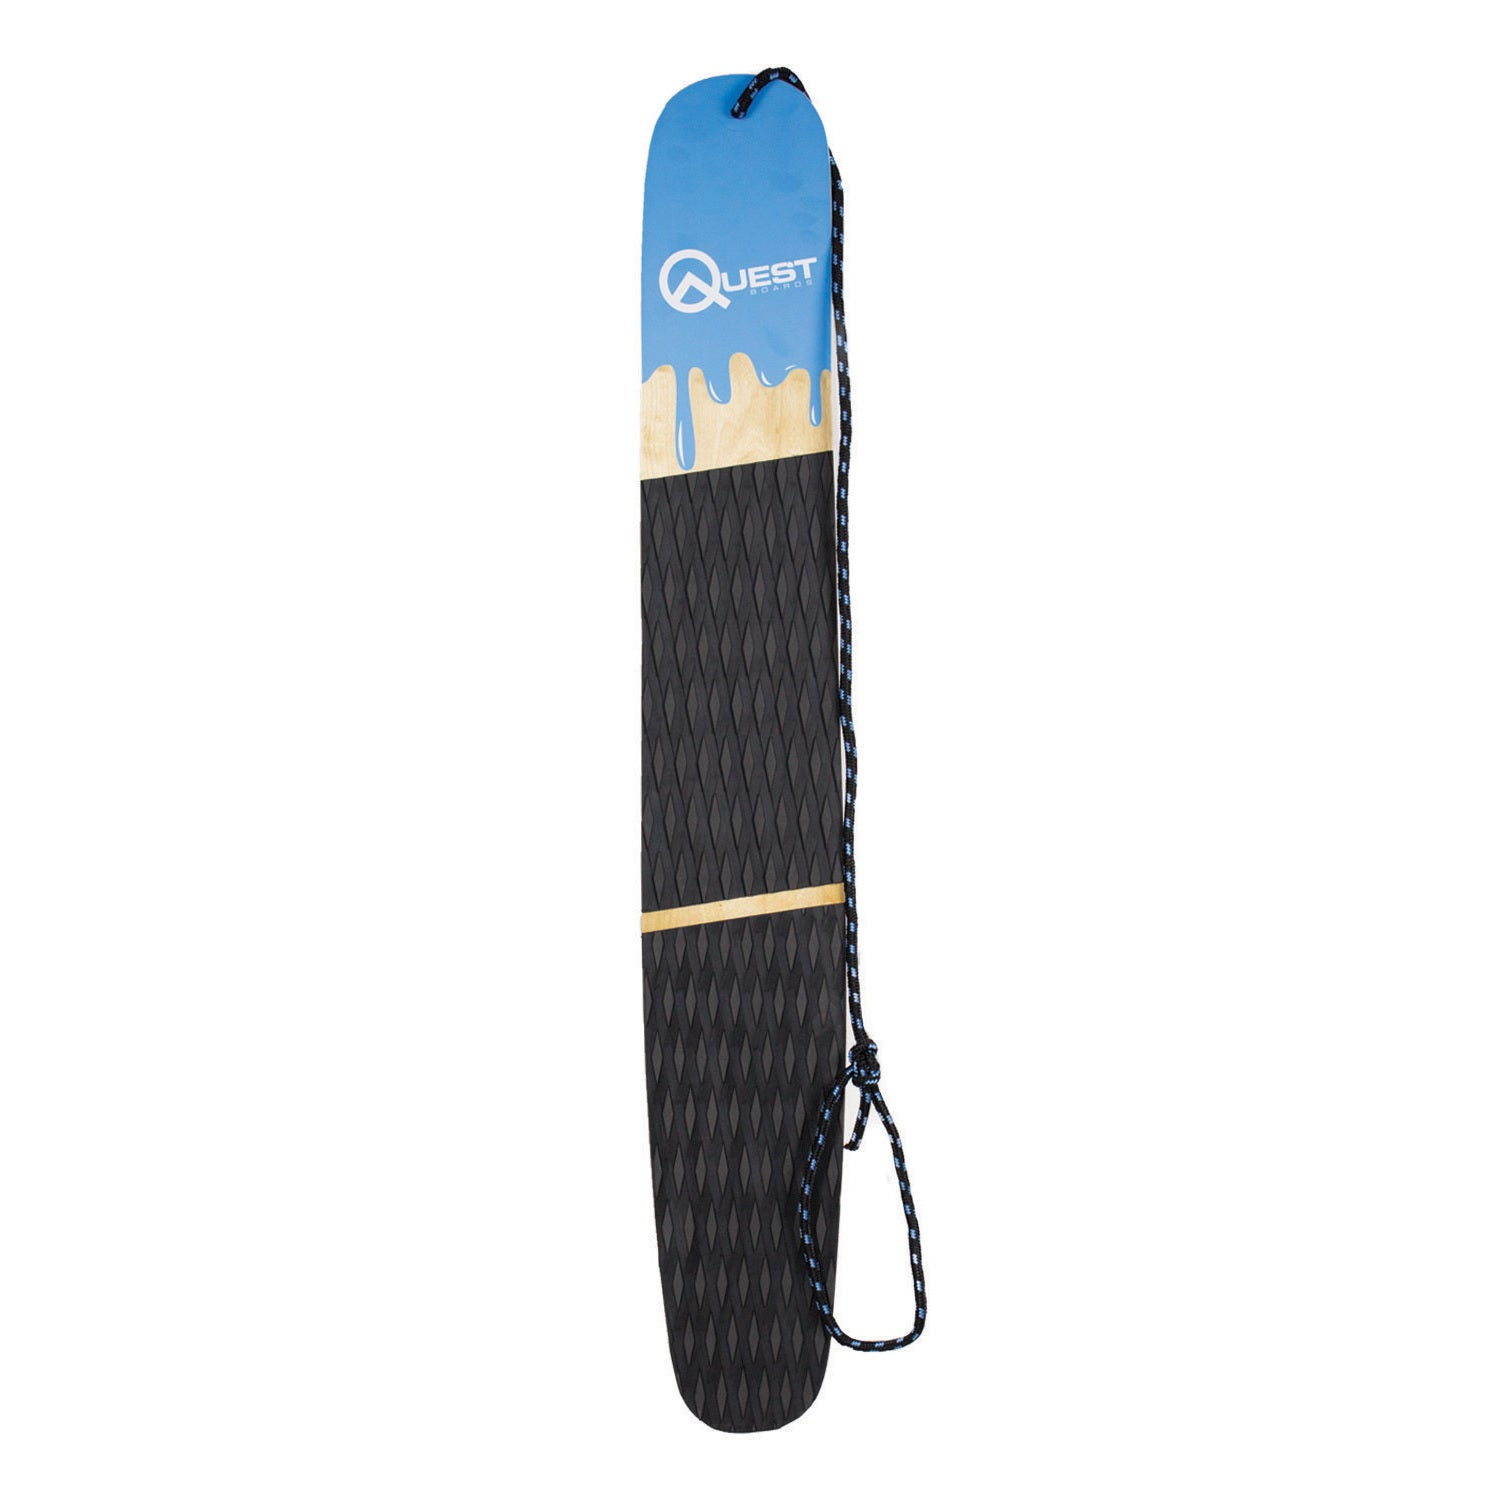 Shenzhen Quest SnoSk8 48-inch Stand-up Snow Skate Snowboa...